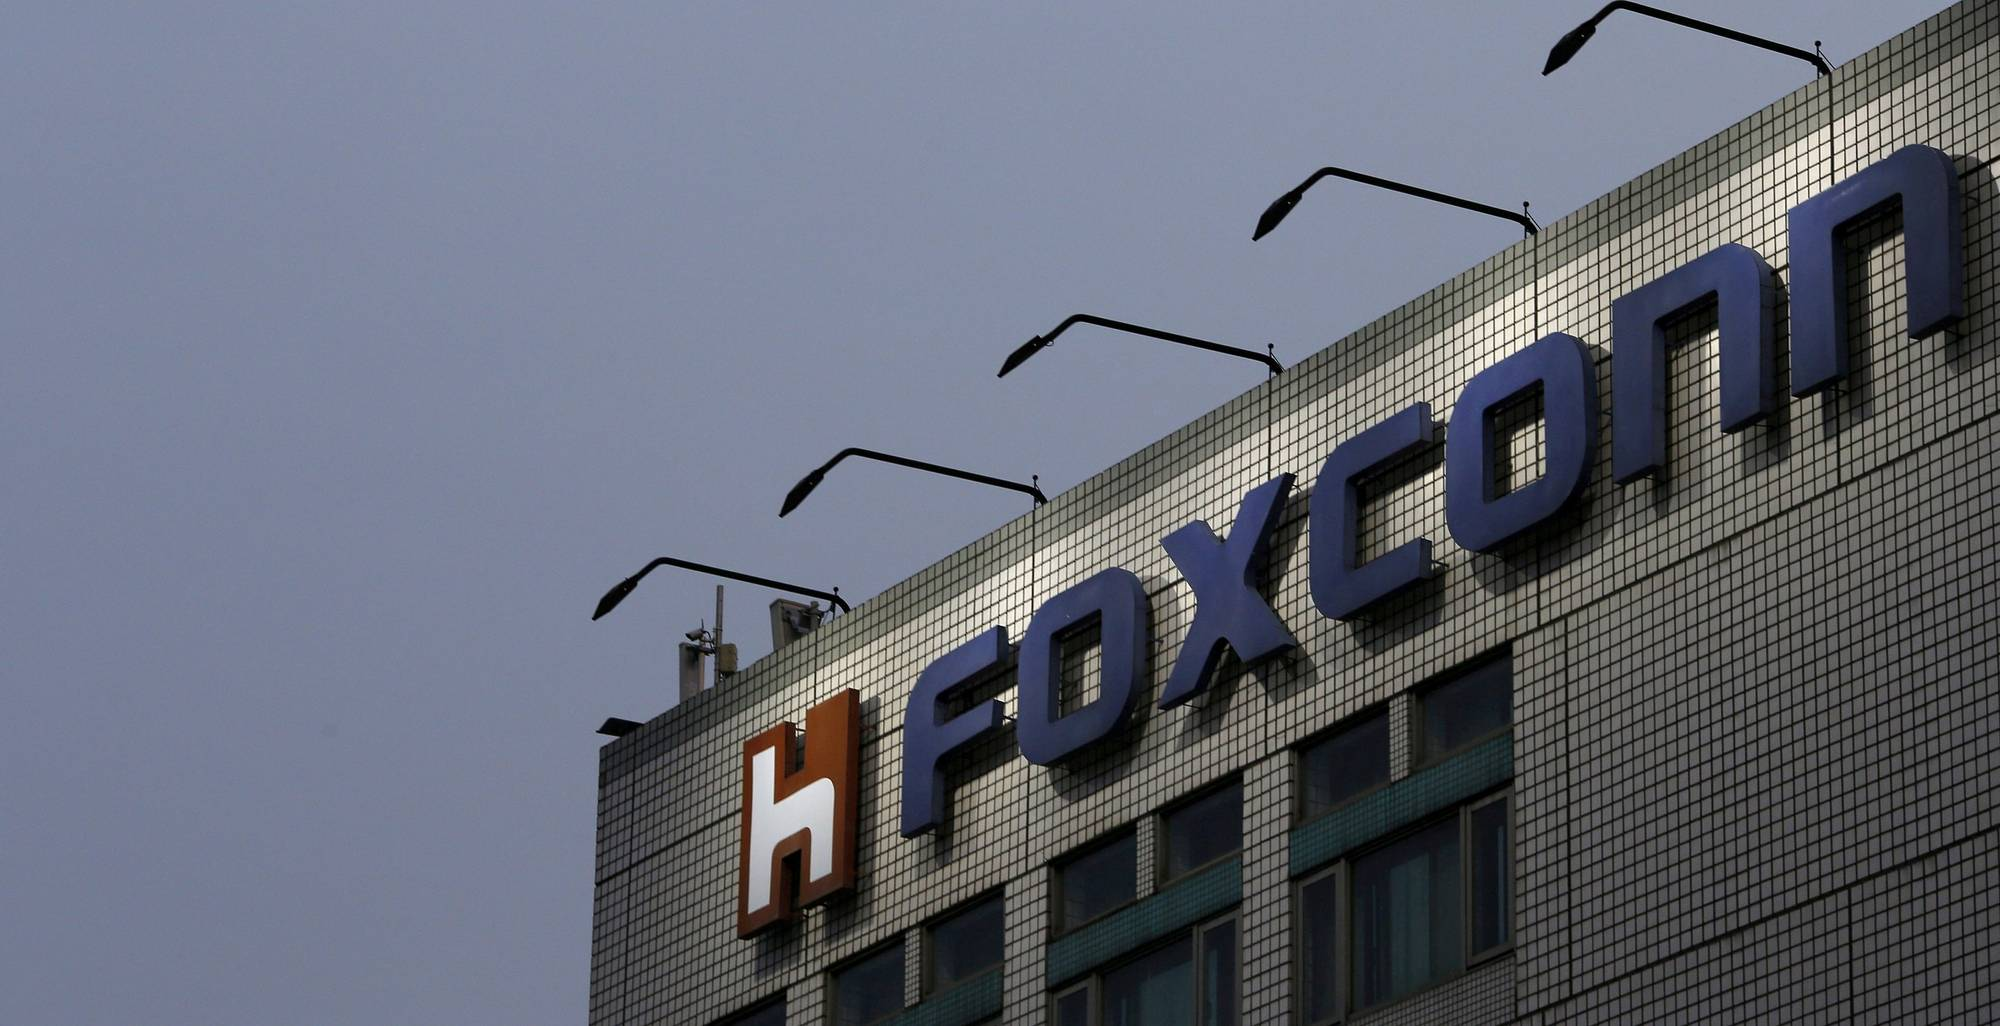 Foxconn headquarters WSJ 001